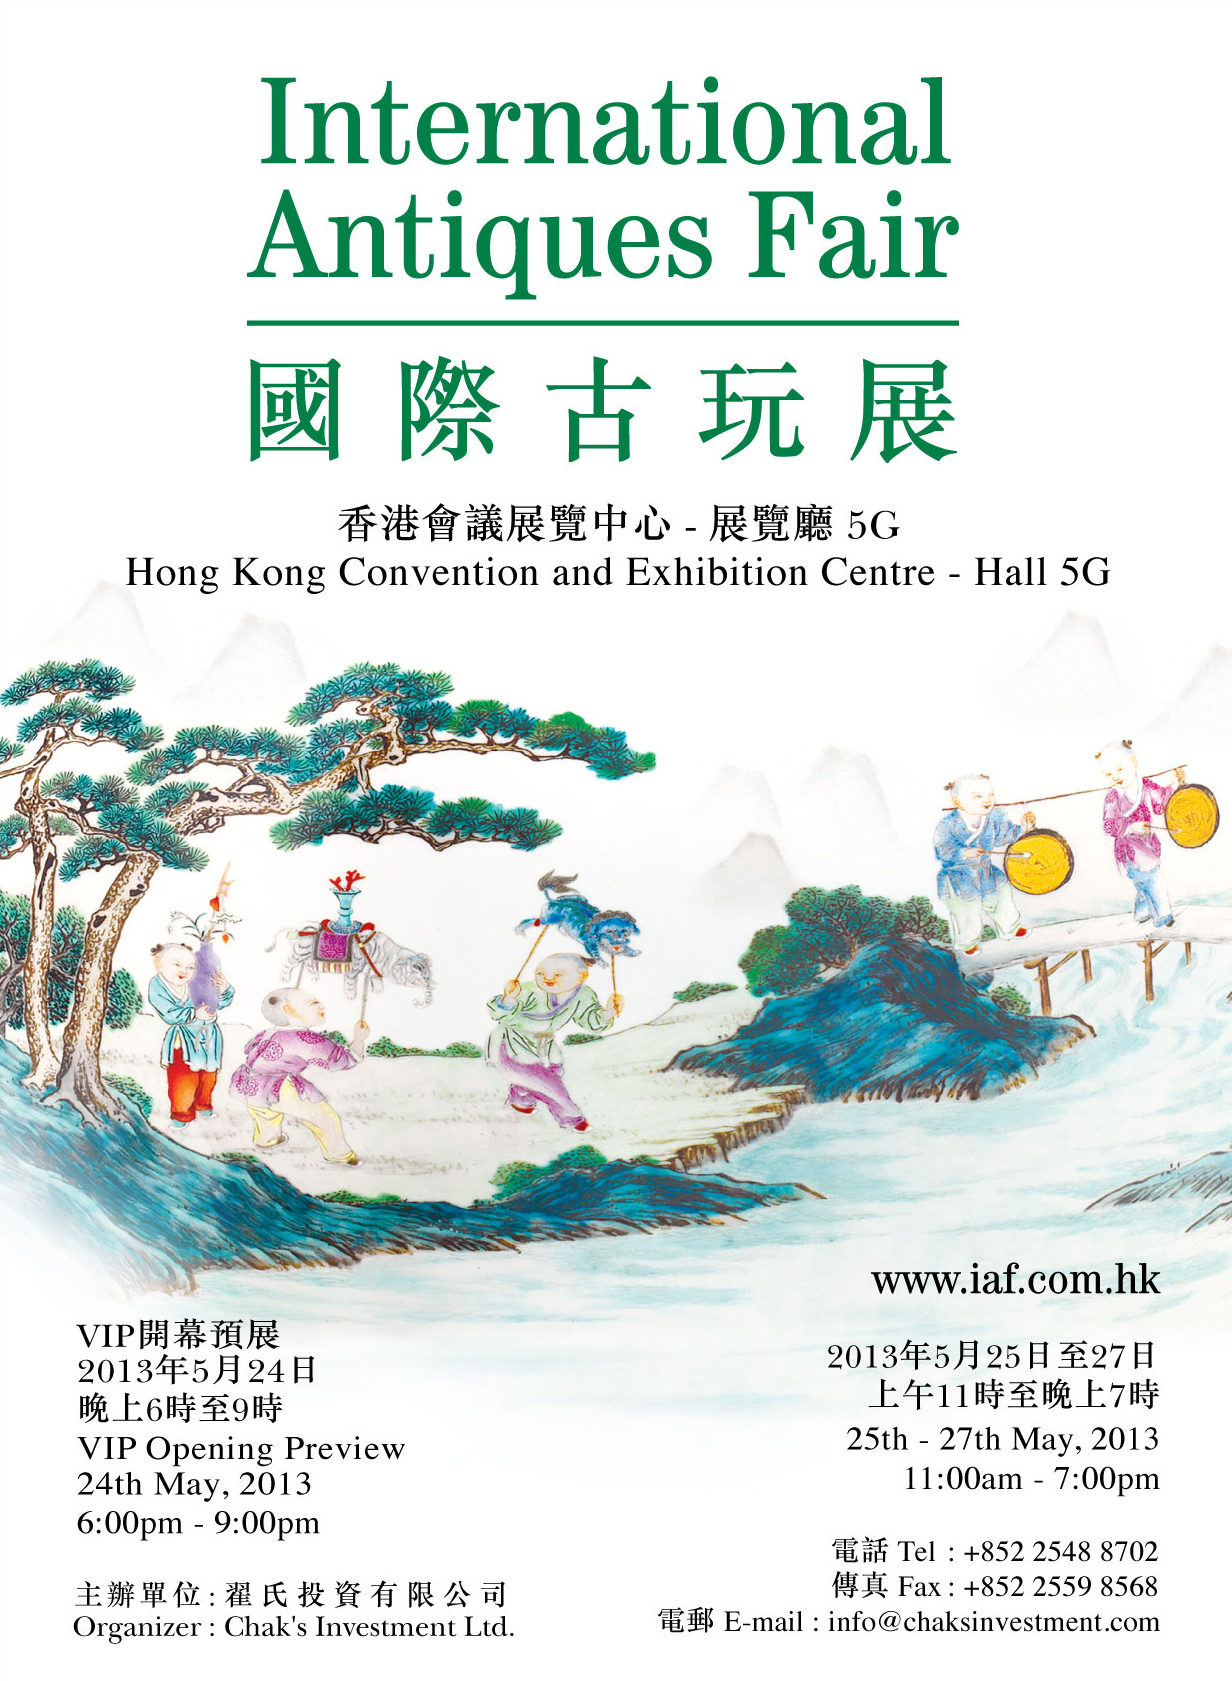 Hong Kong International Antiques Fair